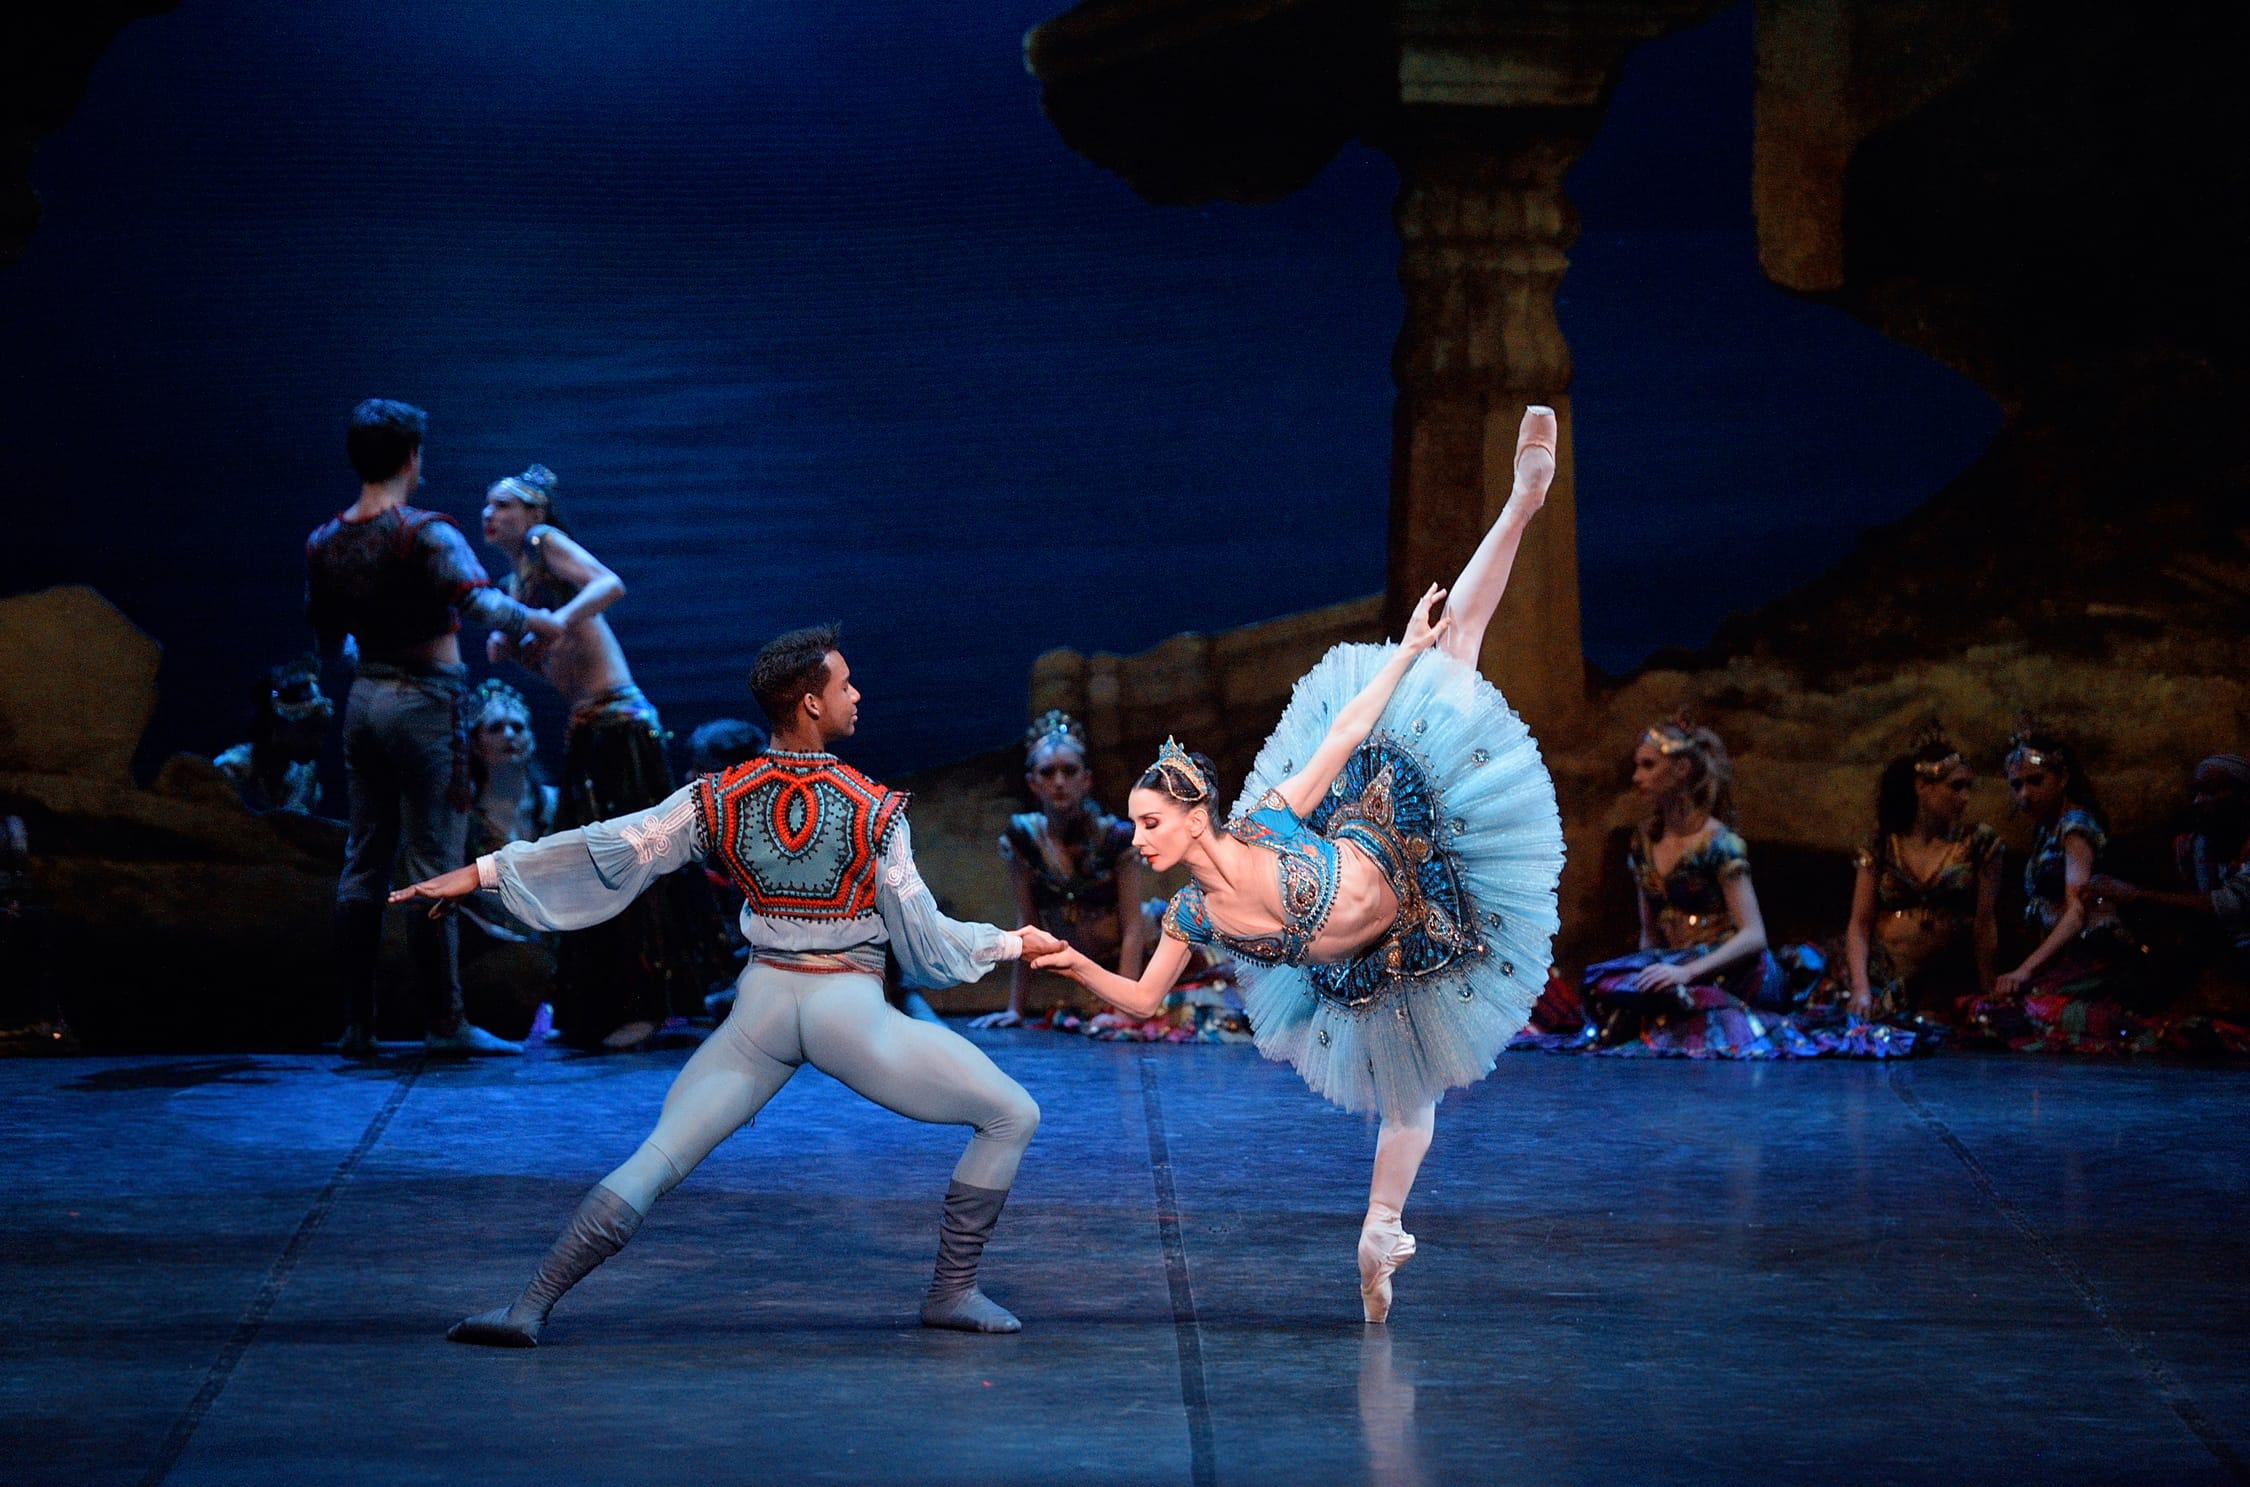 Tamara Rojo as Medora and Osiel Gouneo as Conrad in Le Corsaire © Laurent Liotardo